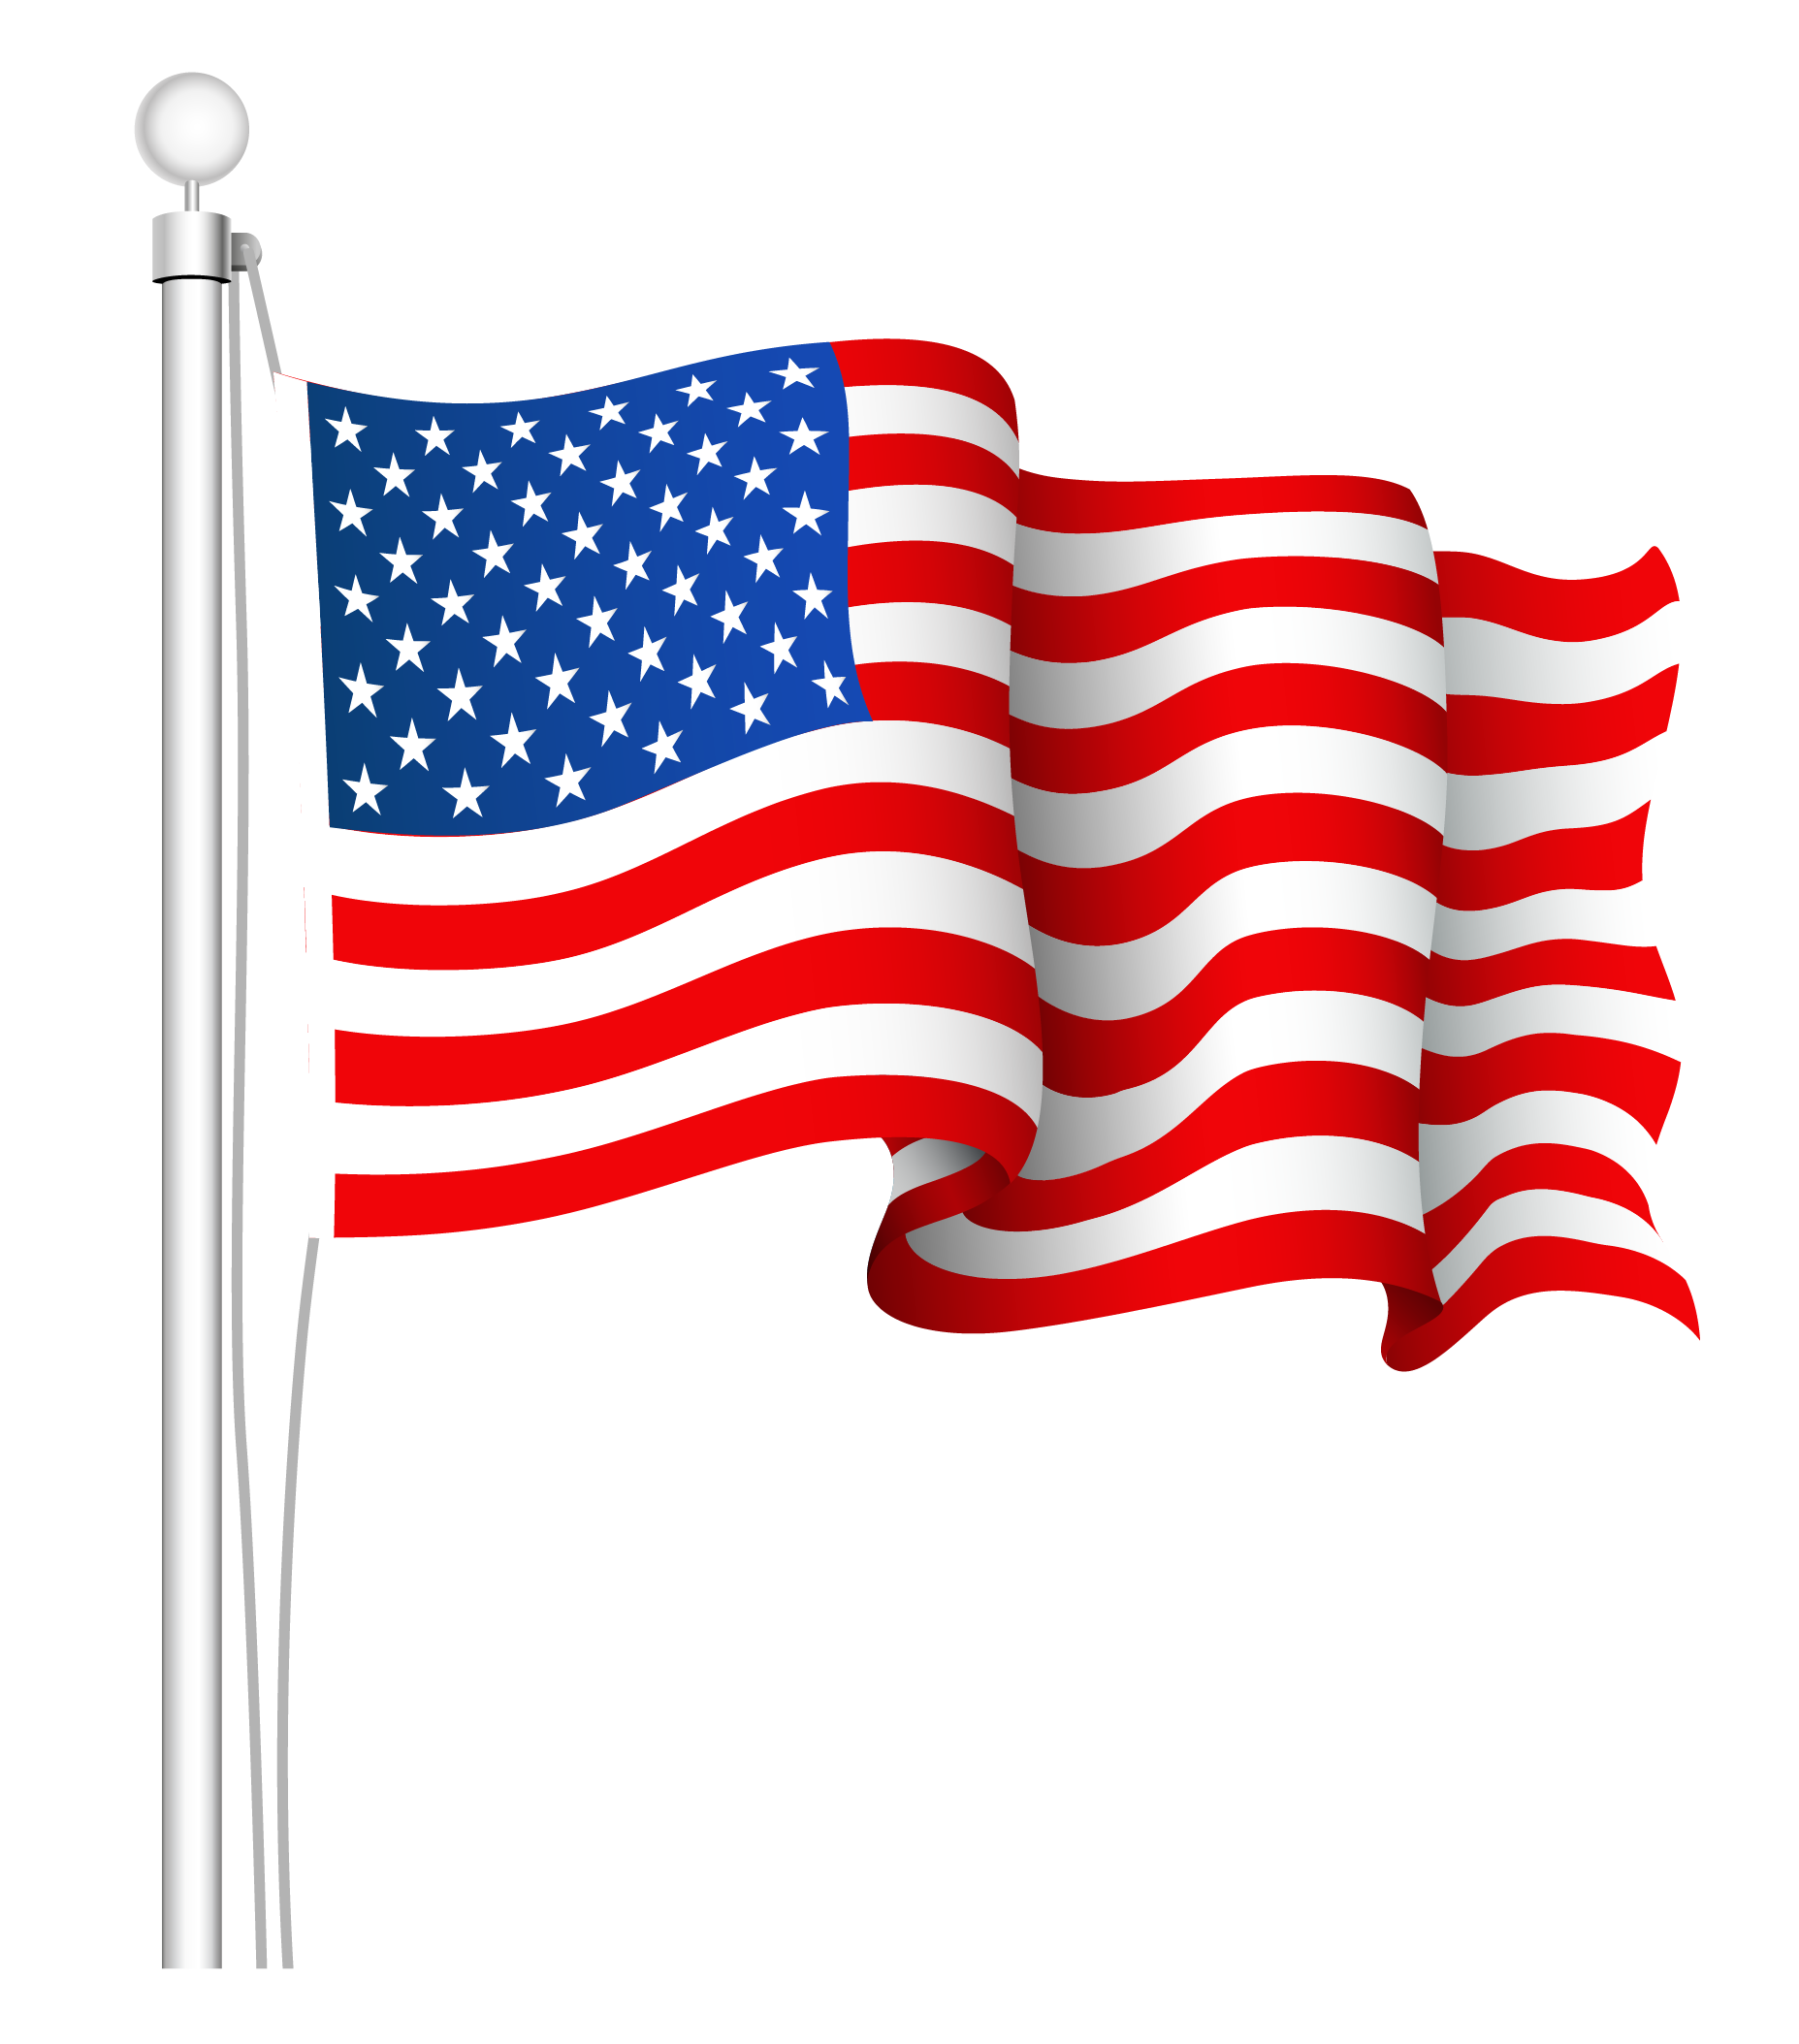 American flag free flag clip art clipart cliparting